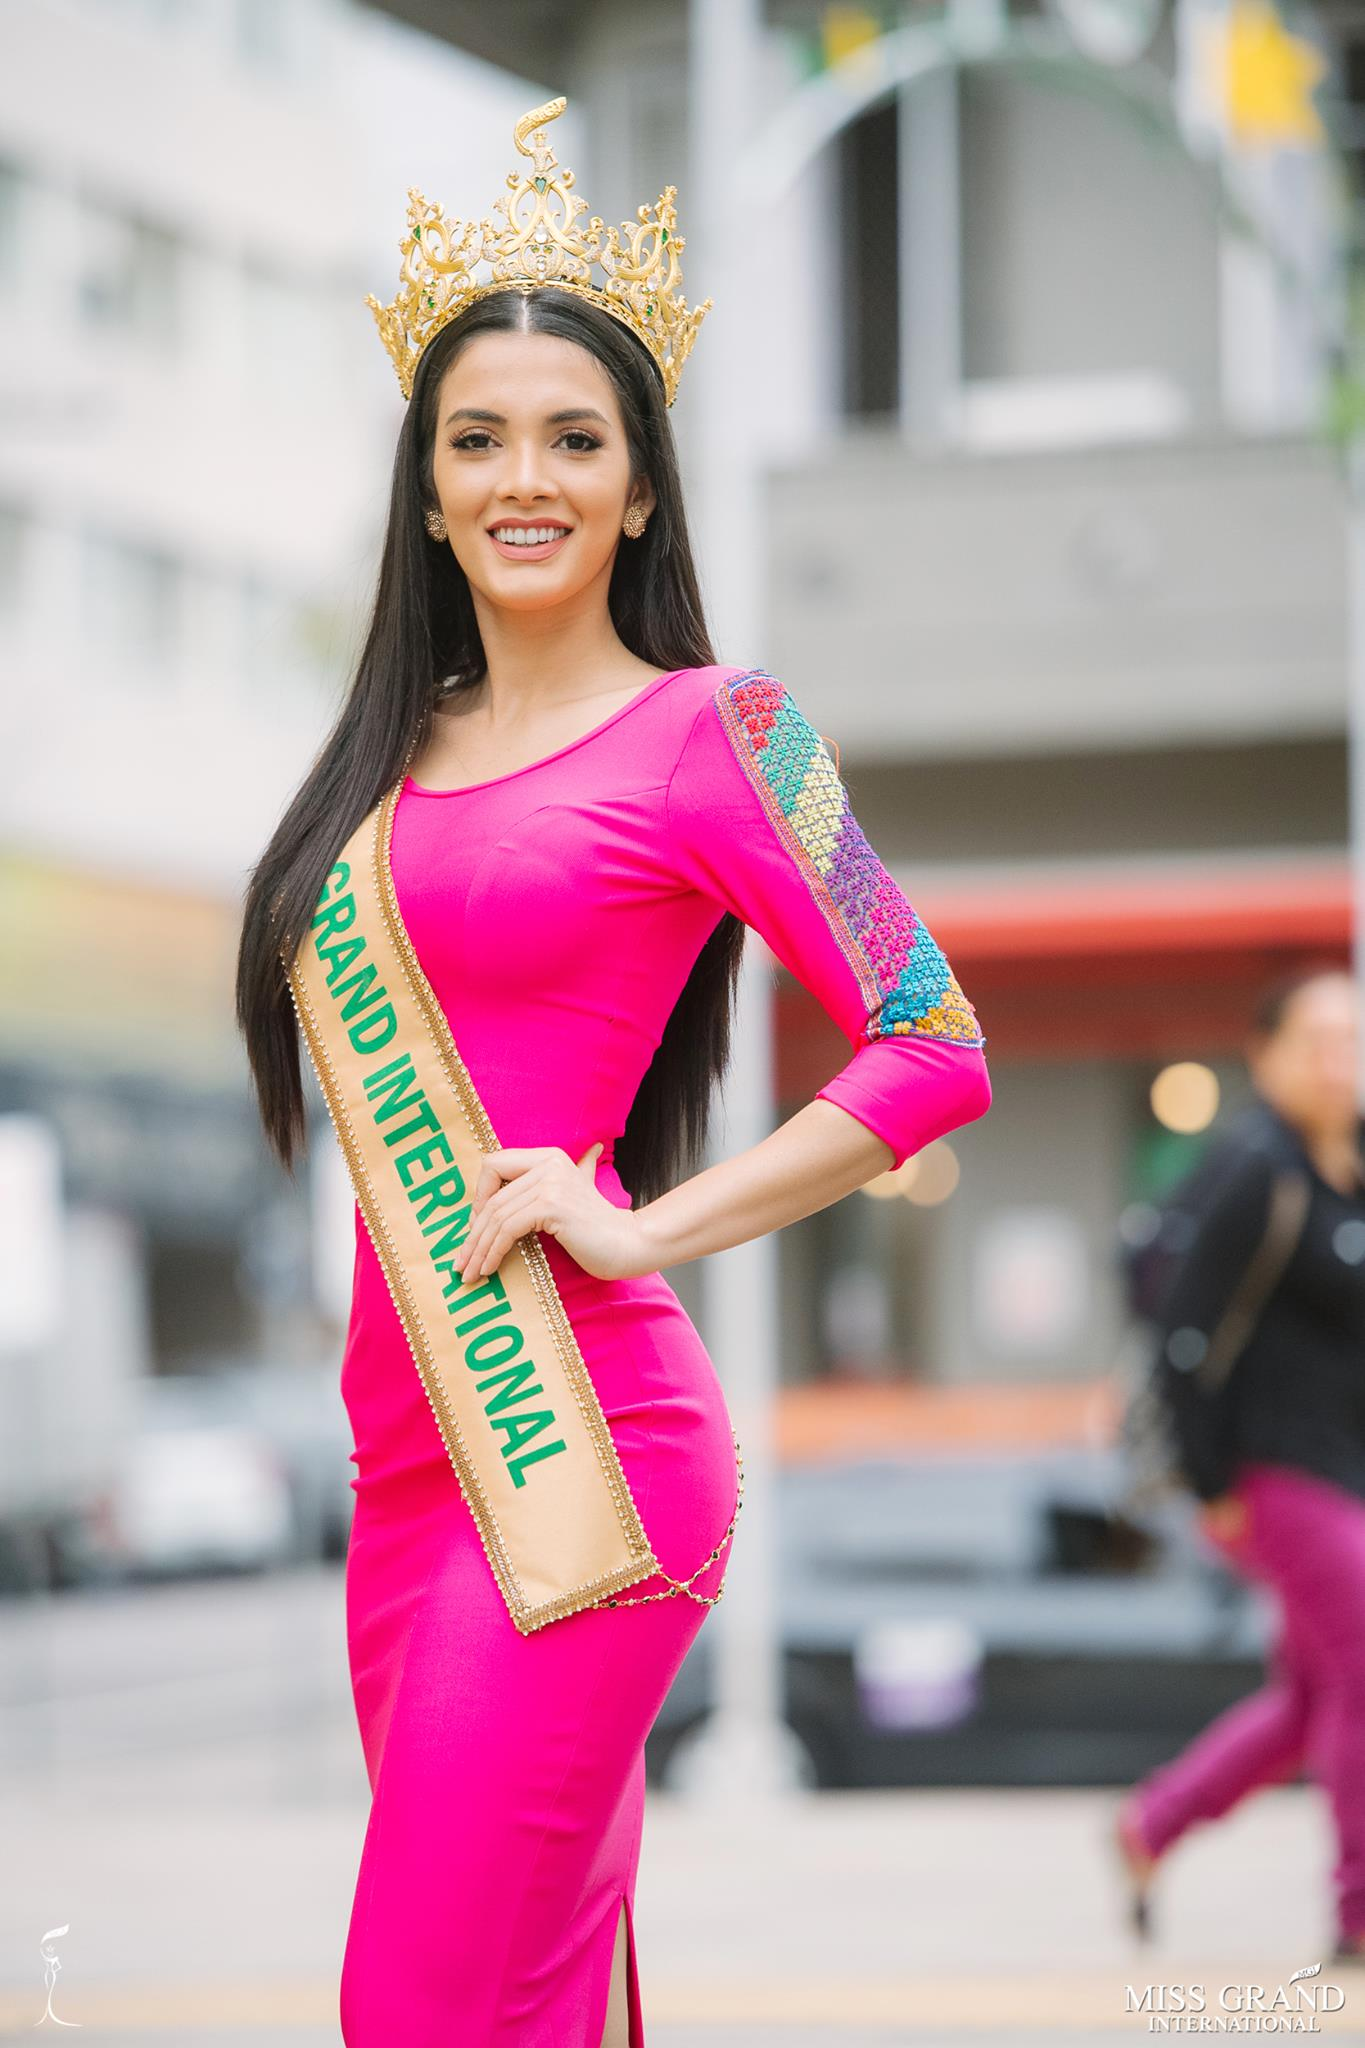 miss grand international 2018 visitando brasil para assistir a final de miss grand brasil 2019. Ctppnzwe